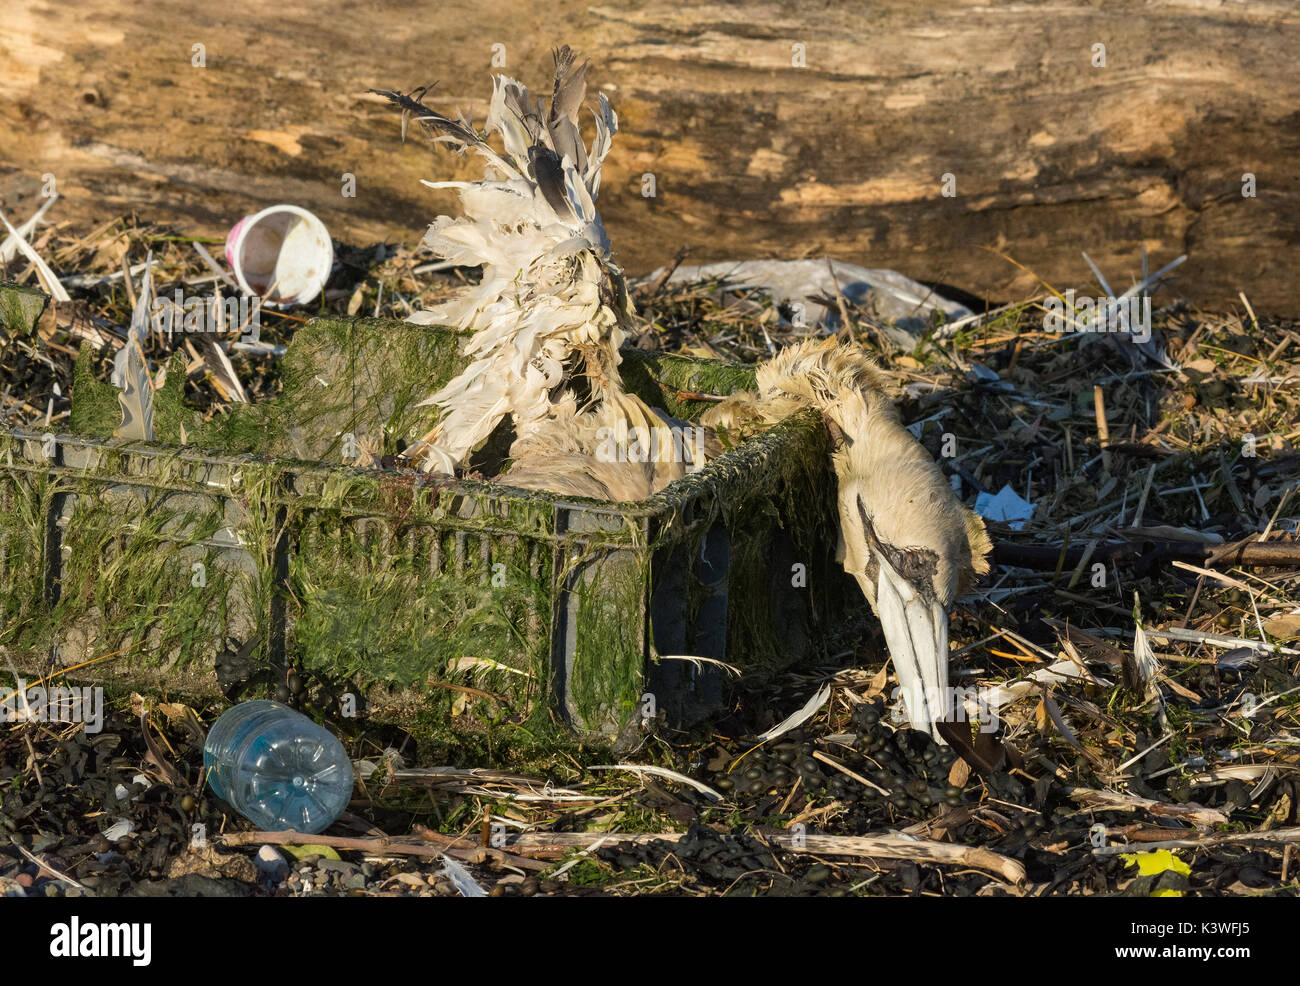 Dead Gannet, Morus bassanus, washed up on beach in plastic crate, Lancashire, UK - Stock Image